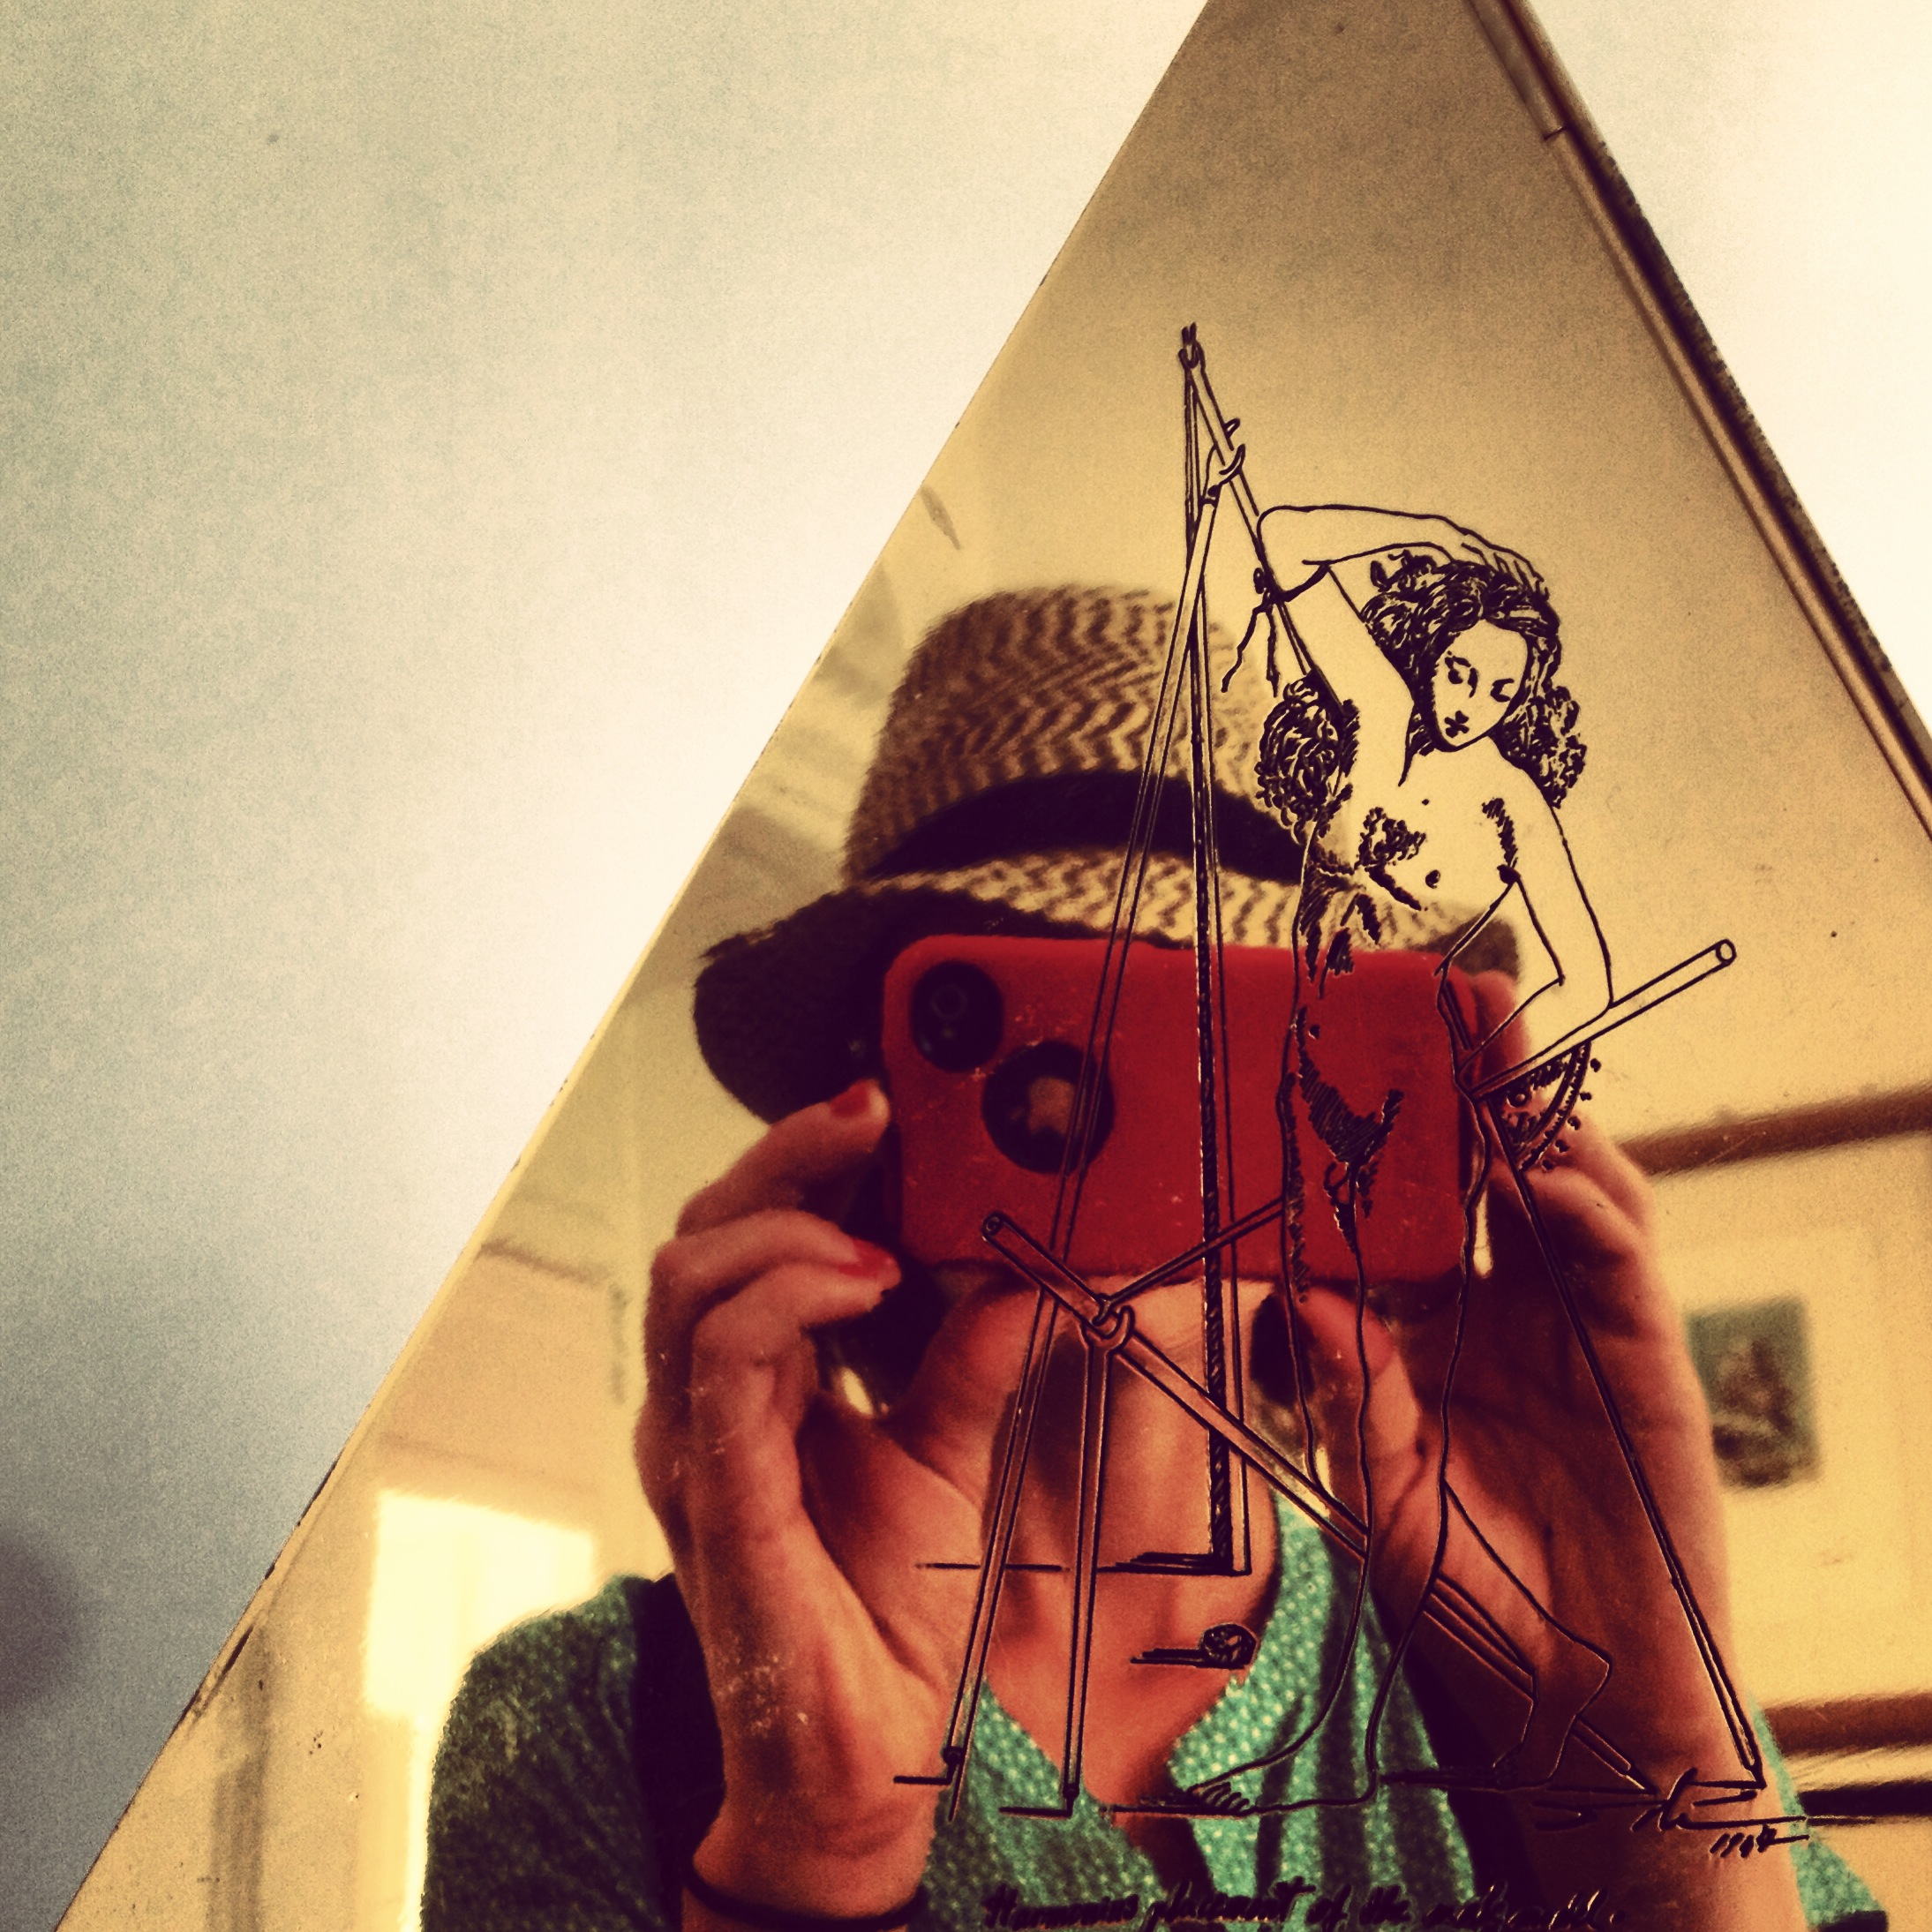 Me and iPhone and Dali.